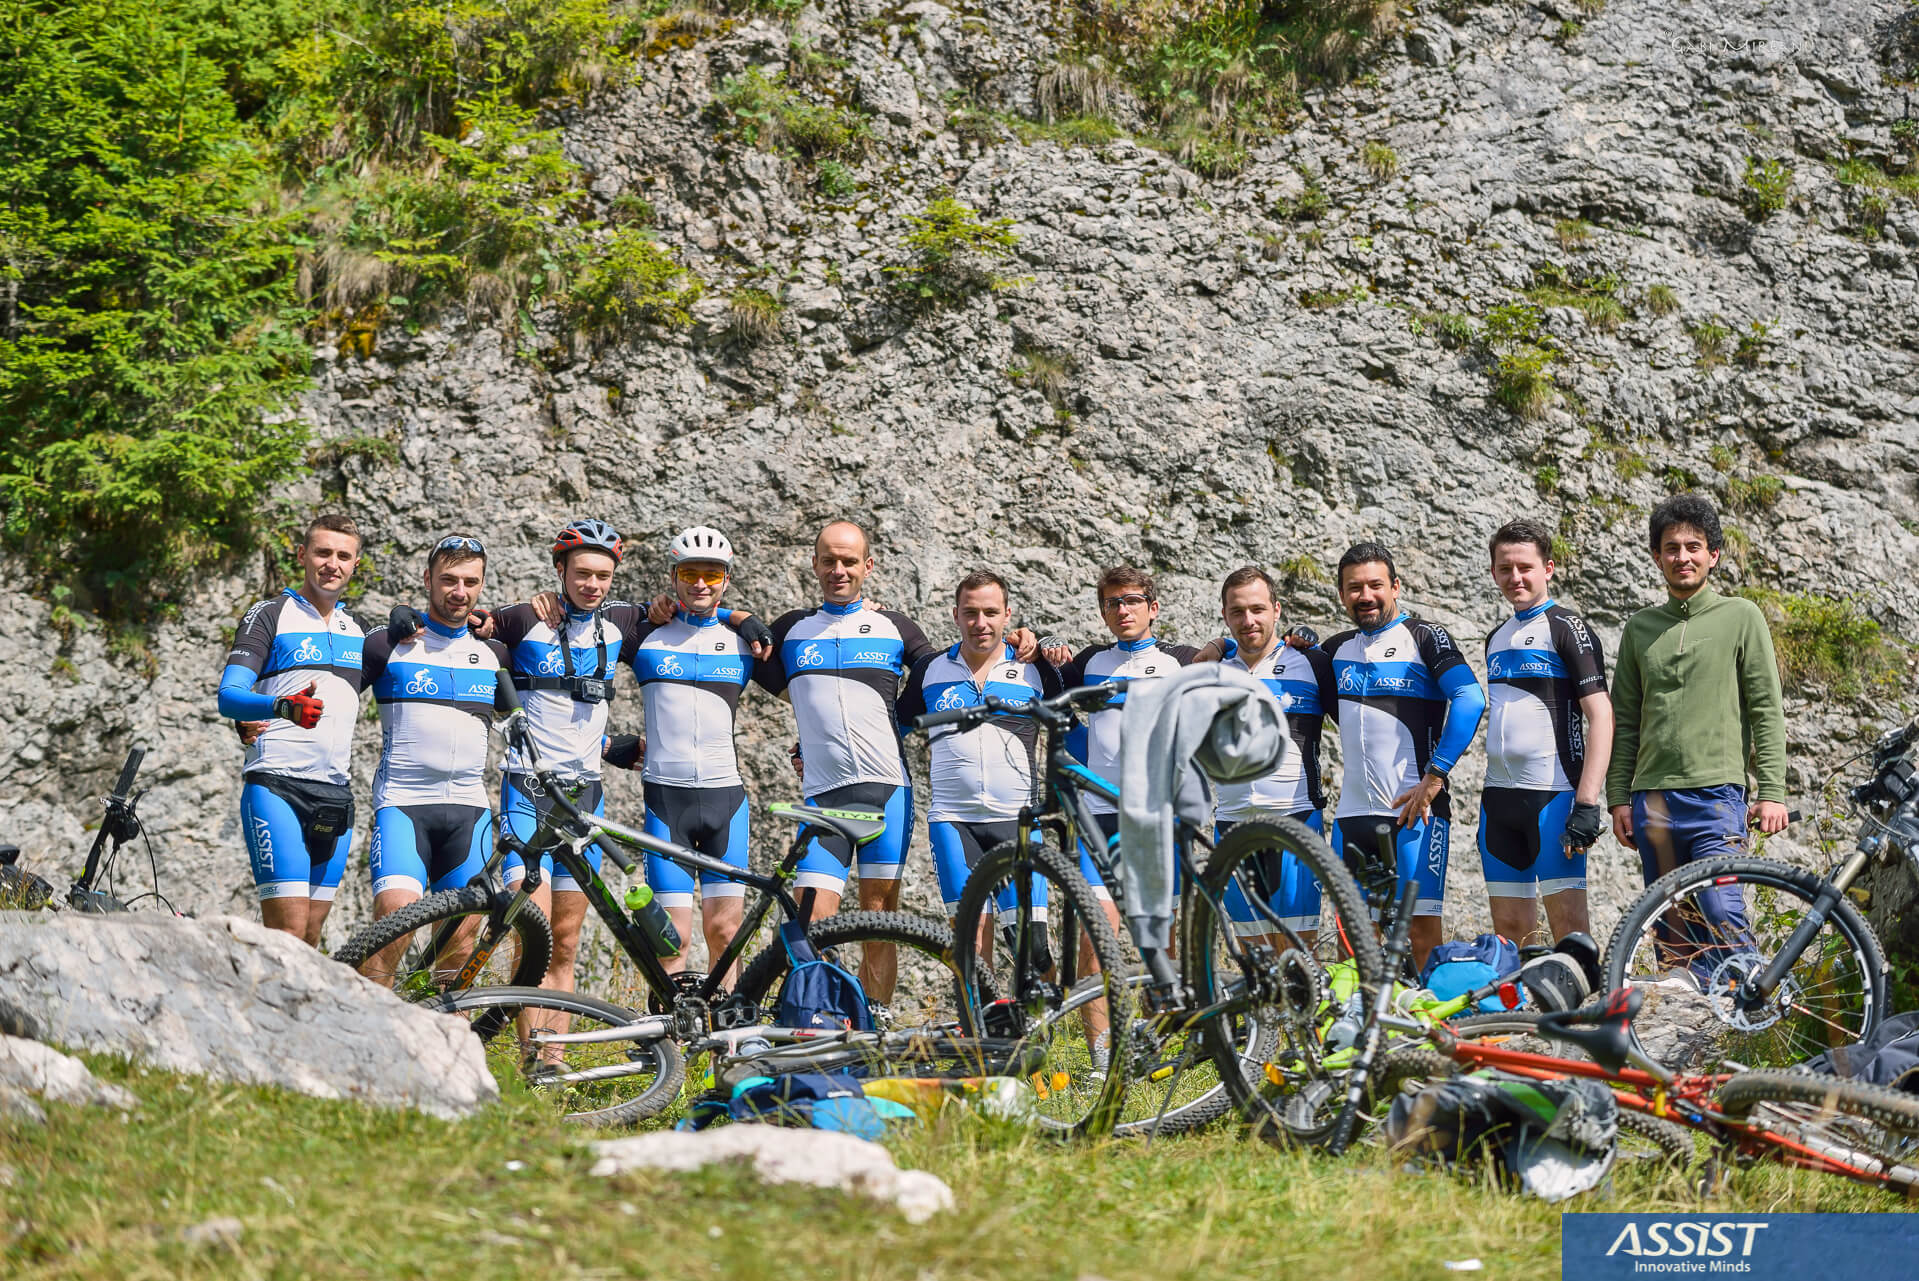 https://assist-software.net/%20ASSIST%20Biking%20Club%20event%20in%20the%20Rarau%20mountains%20-%20promoted%20picture